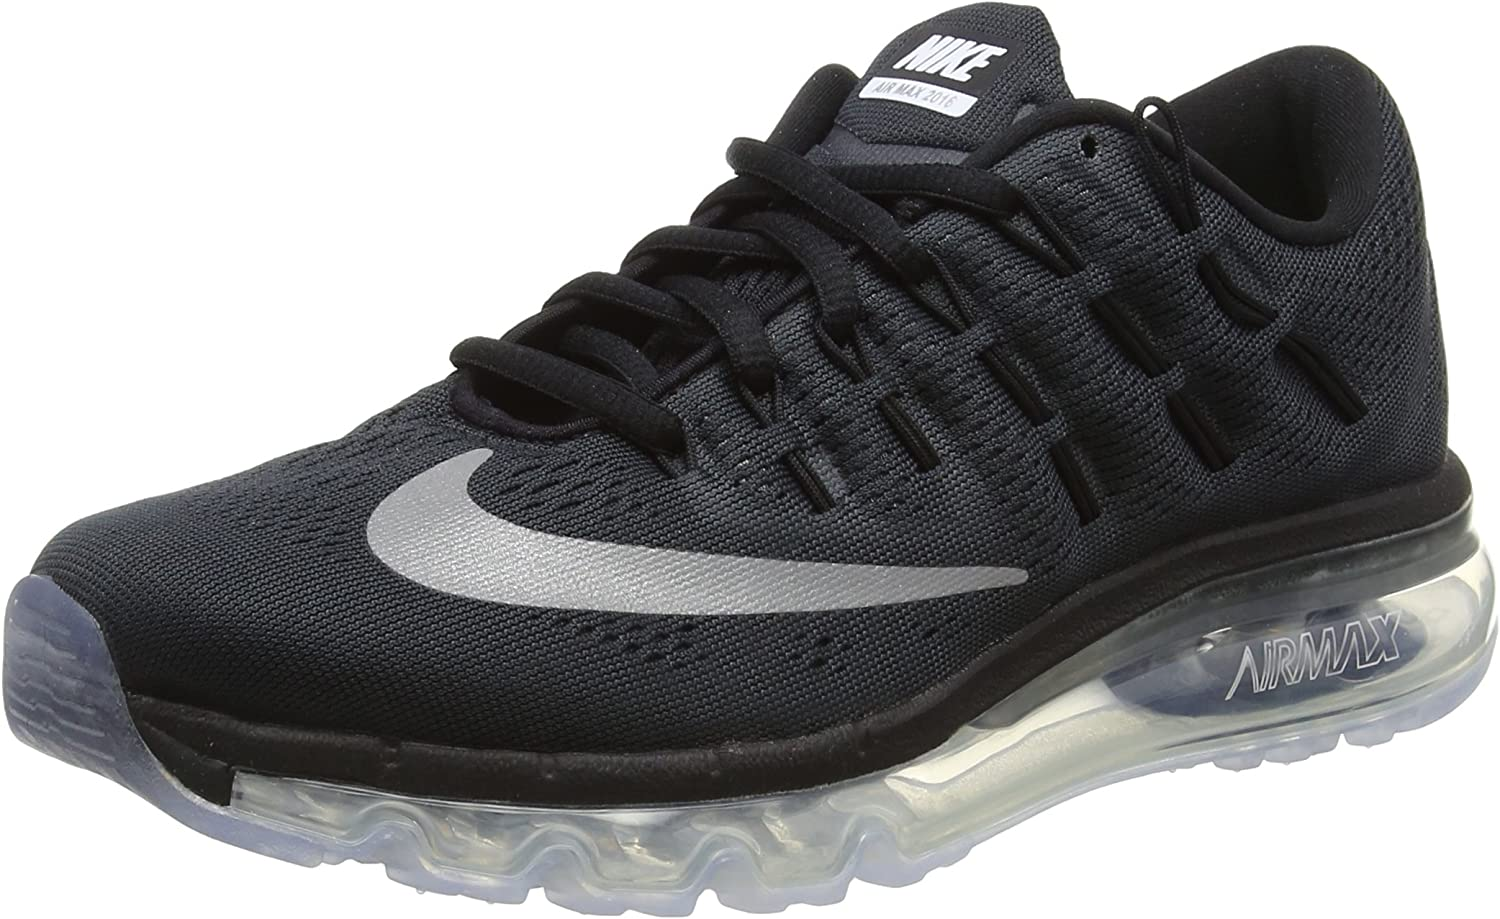 Nike Air MAX 2016 (GS), Zapatillas de Running para Hombre, Negro (Black/Reflect Silver), 40 EU: Amazon.es: Zapatos y complementos